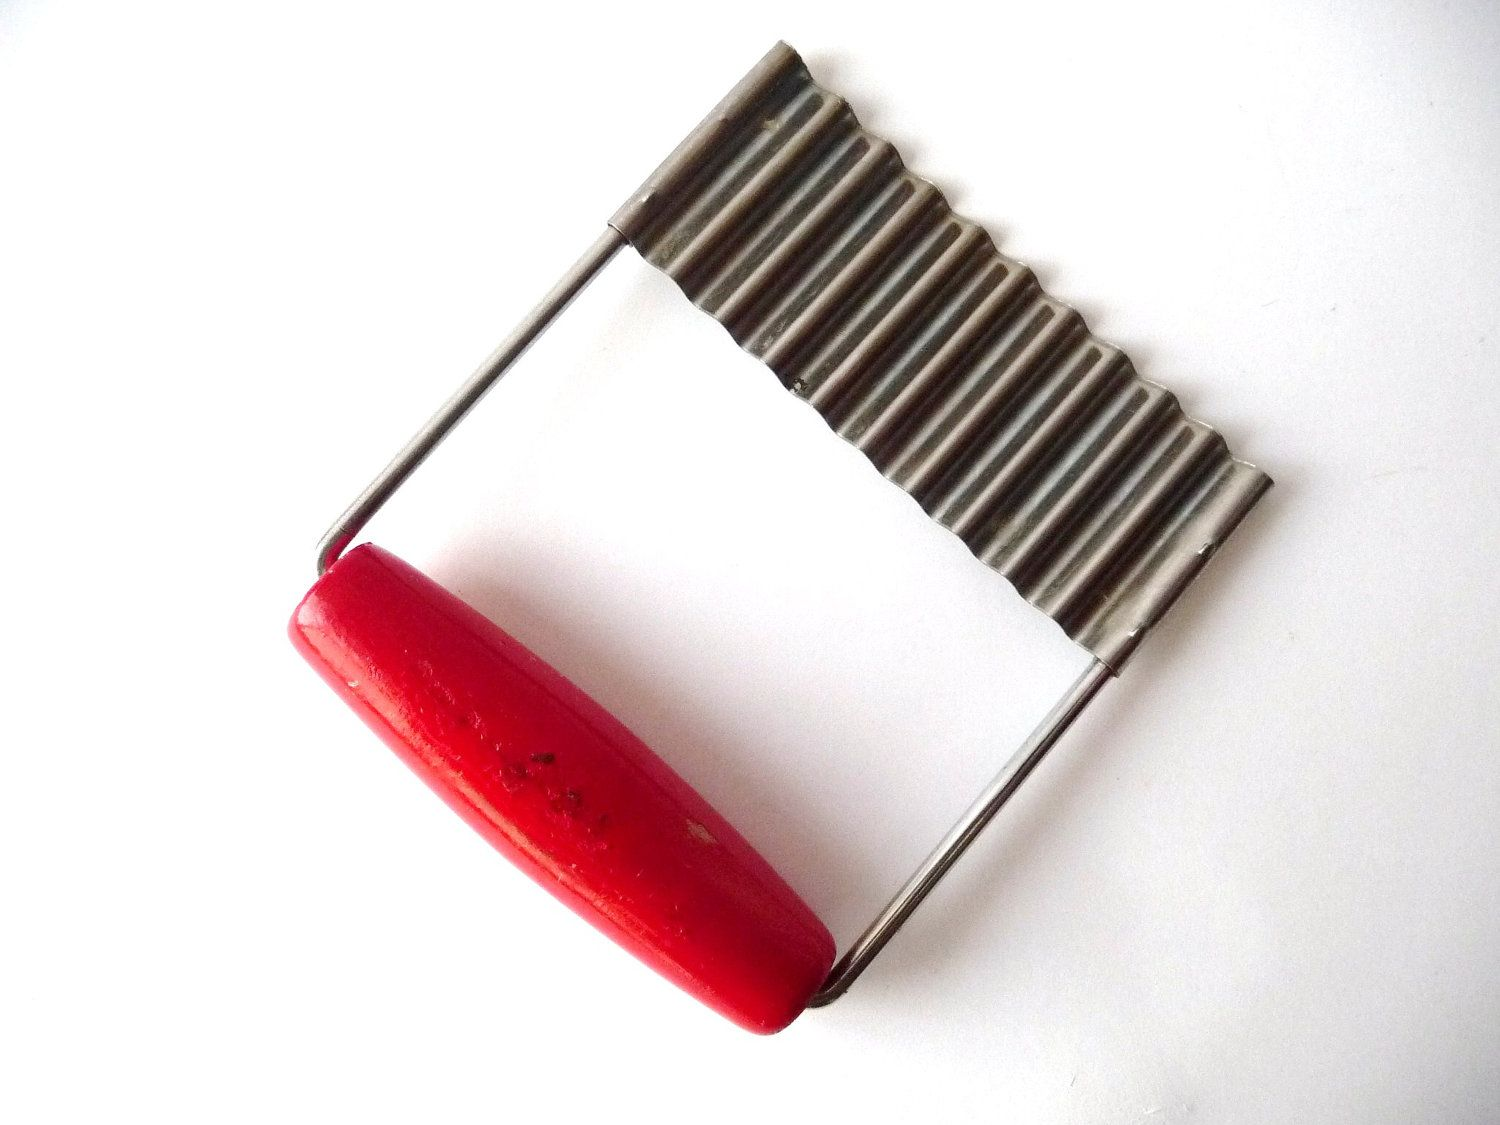 Vintage Silver Metal Cutter Slicer with Red Wood Handle - French Fries